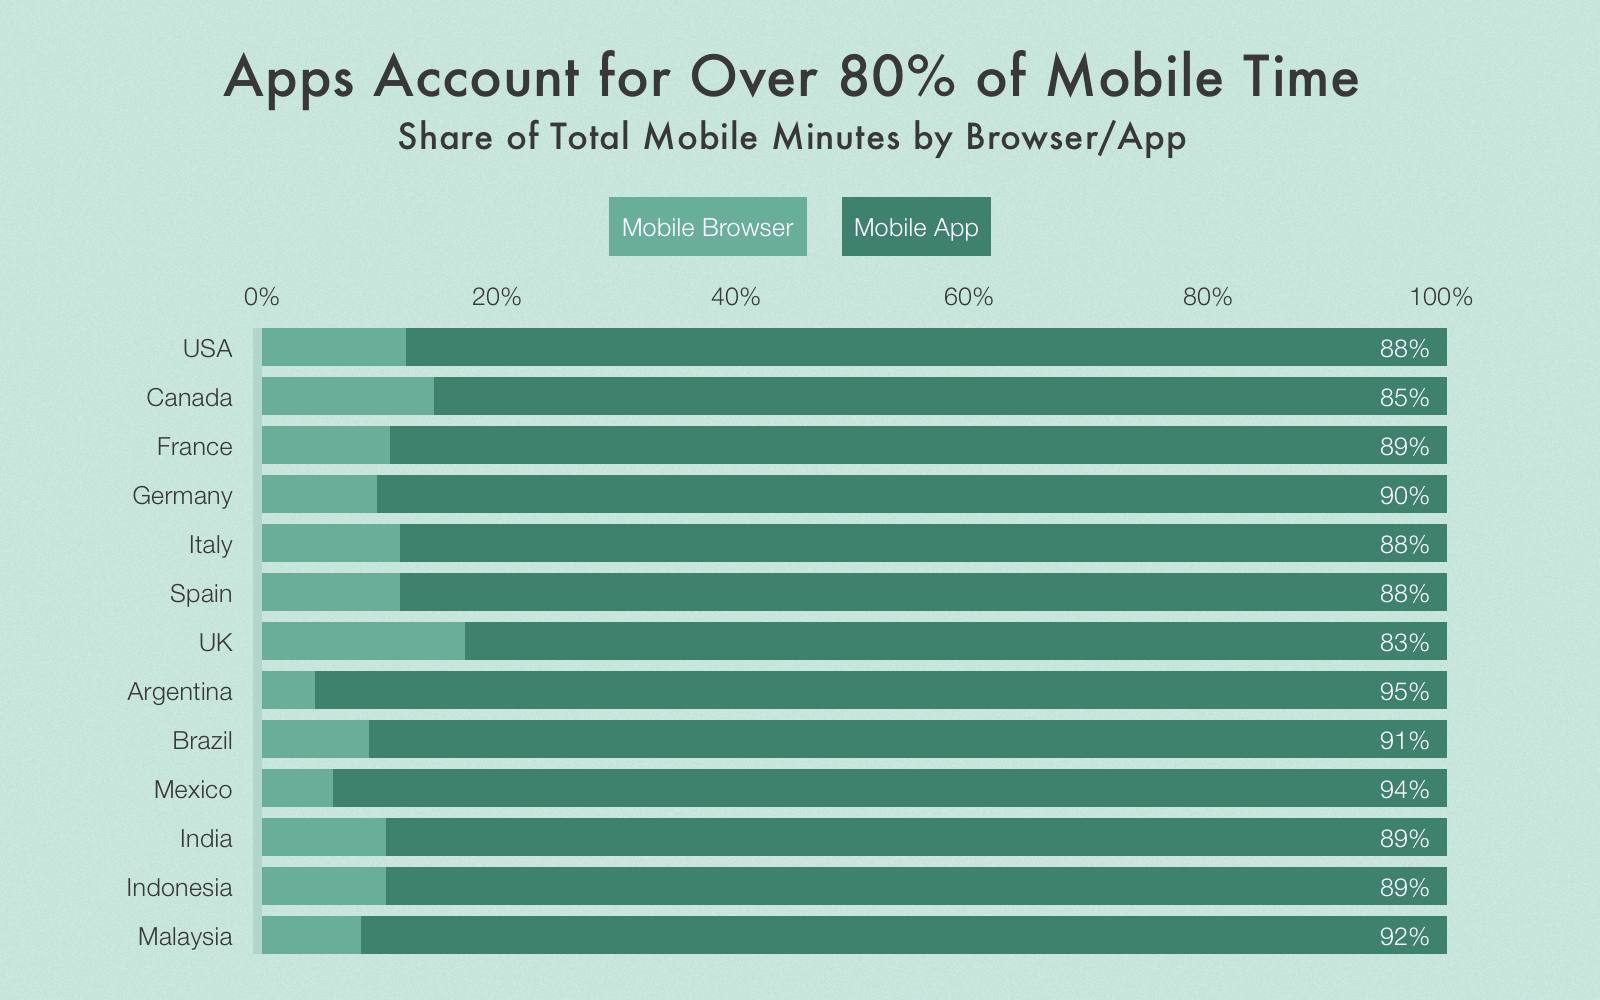 One of the reasons to create a shopping app is that mobile apps are used more compared to websites